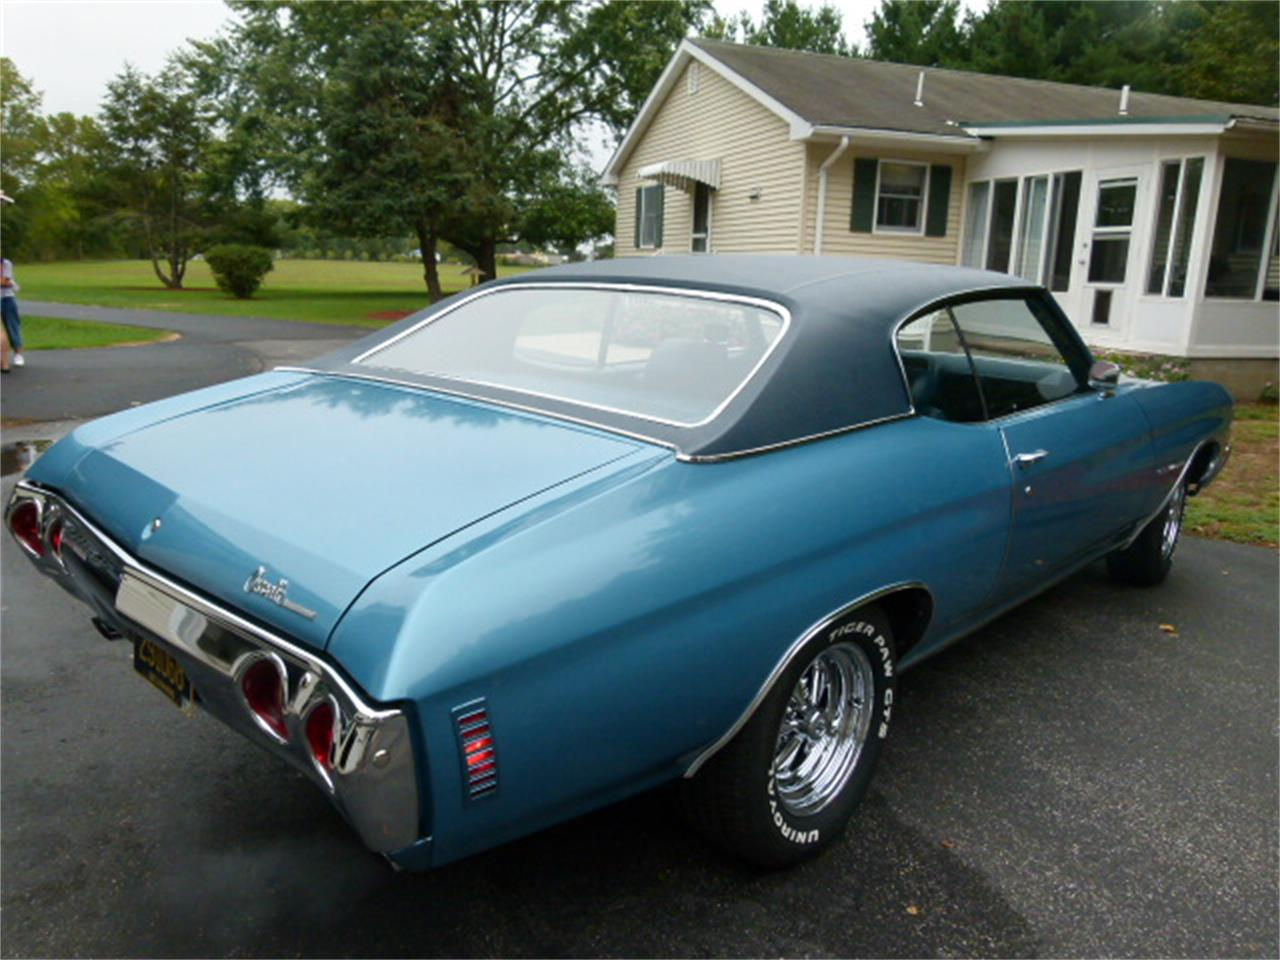 Large Picture of 1971 Chevelle - $29,000.00 Offered by a Private Seller - N3CN